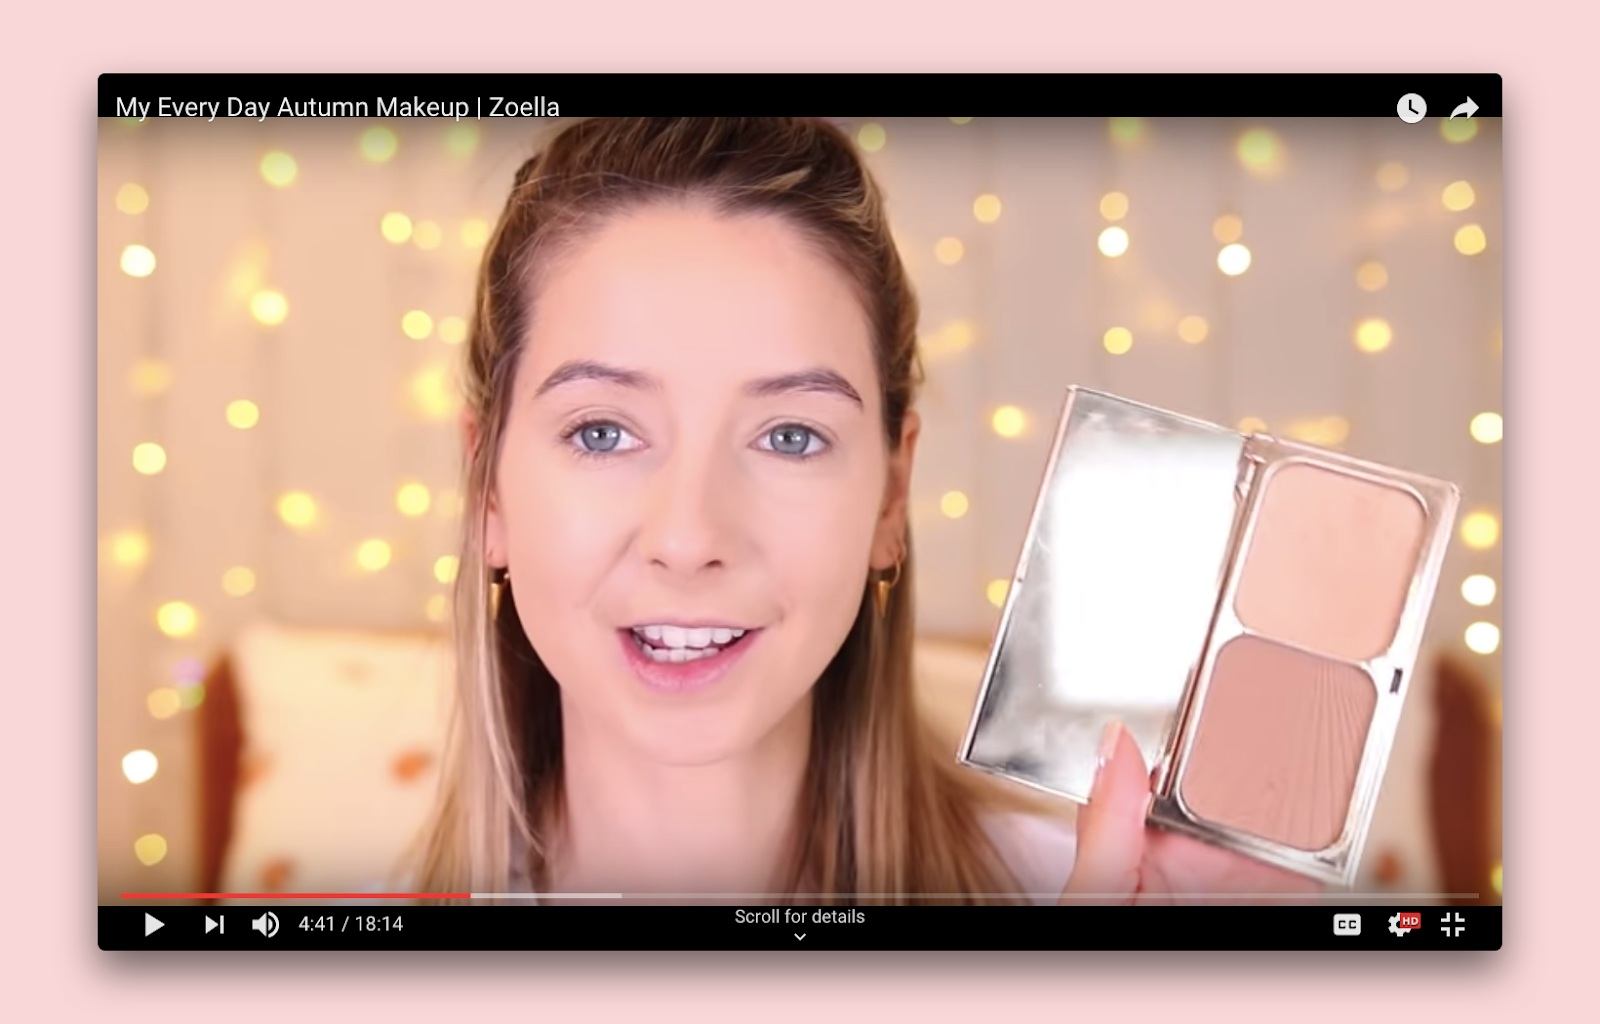 YouTuber Zoella's promotes Kiko Baked Bronzer in Warm Melange in her video My Every Day Autumn Makeup